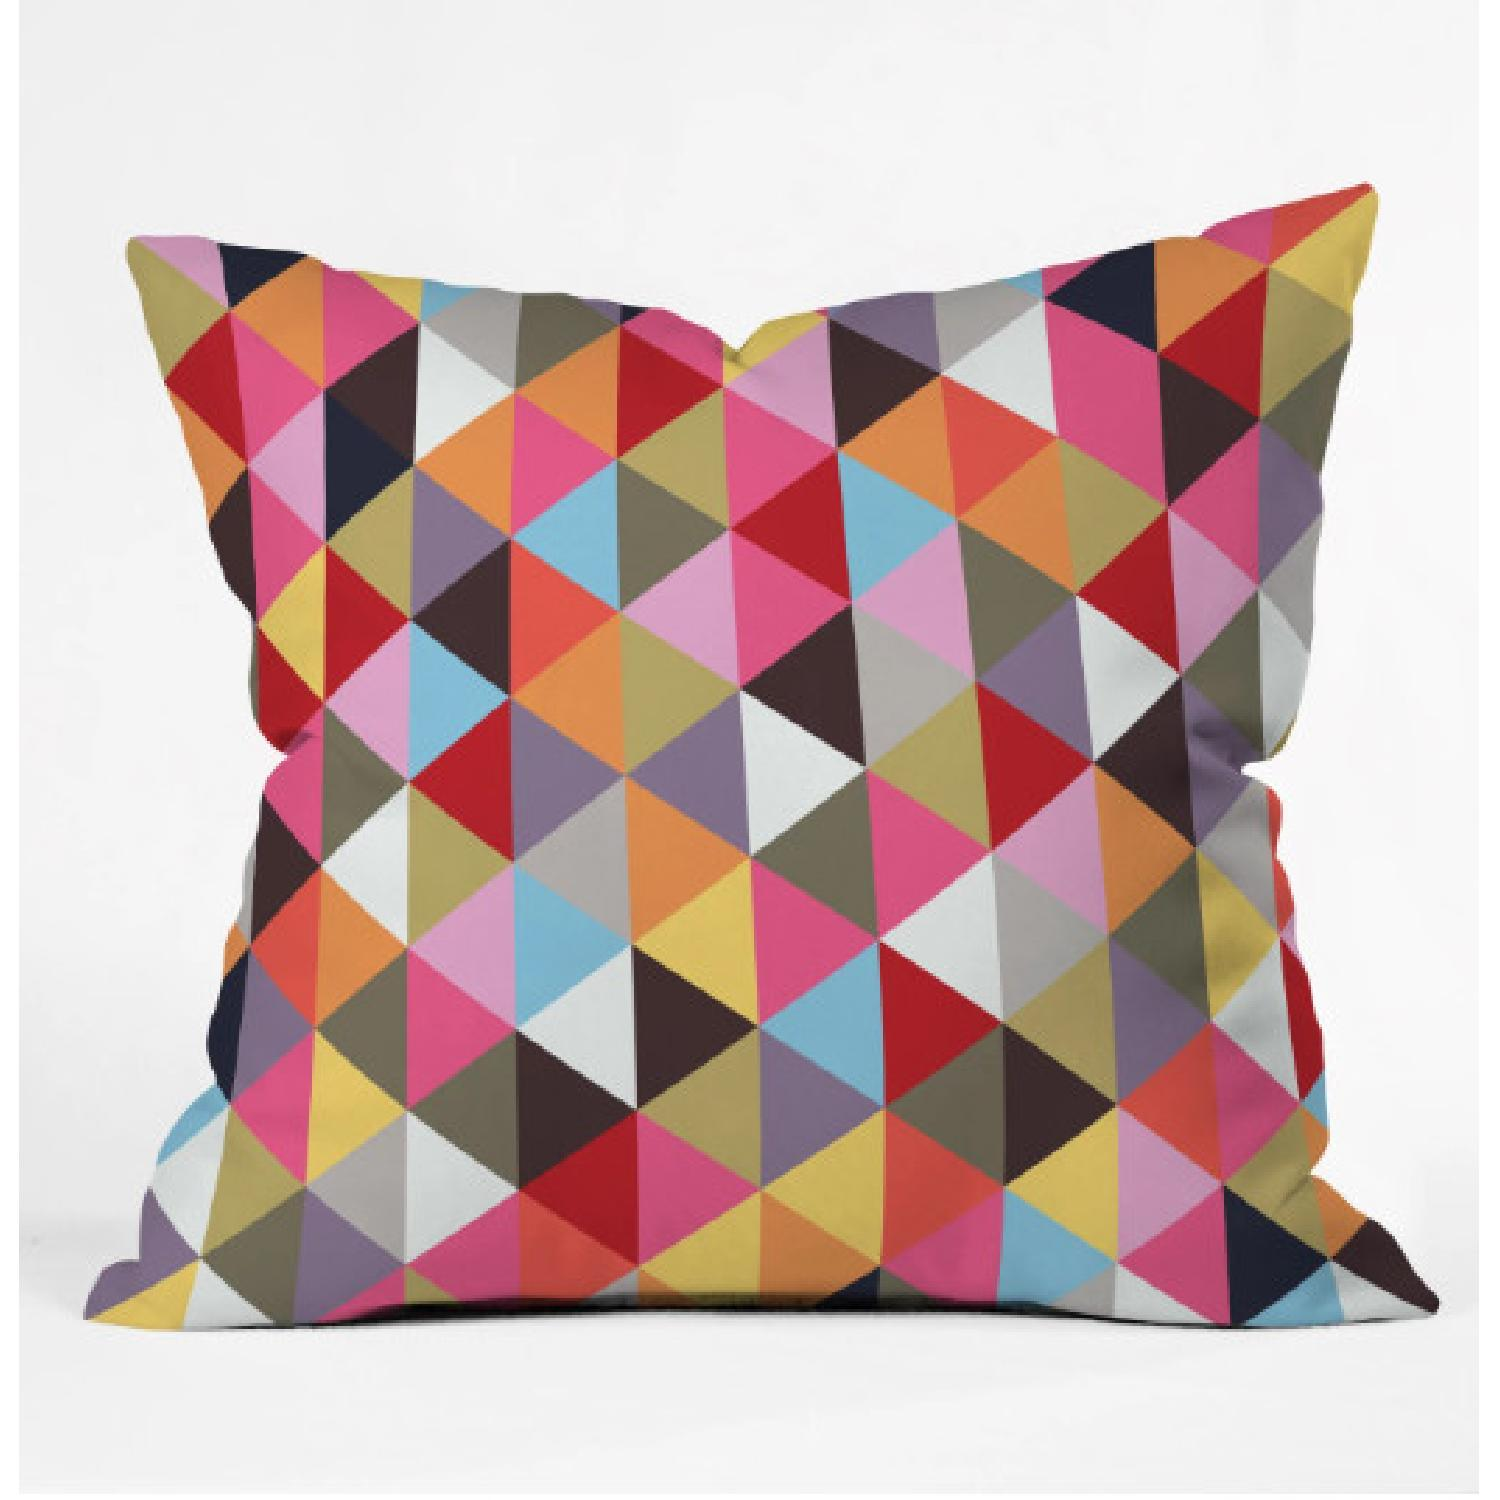 Deny Designs Throw Pillow - image-3